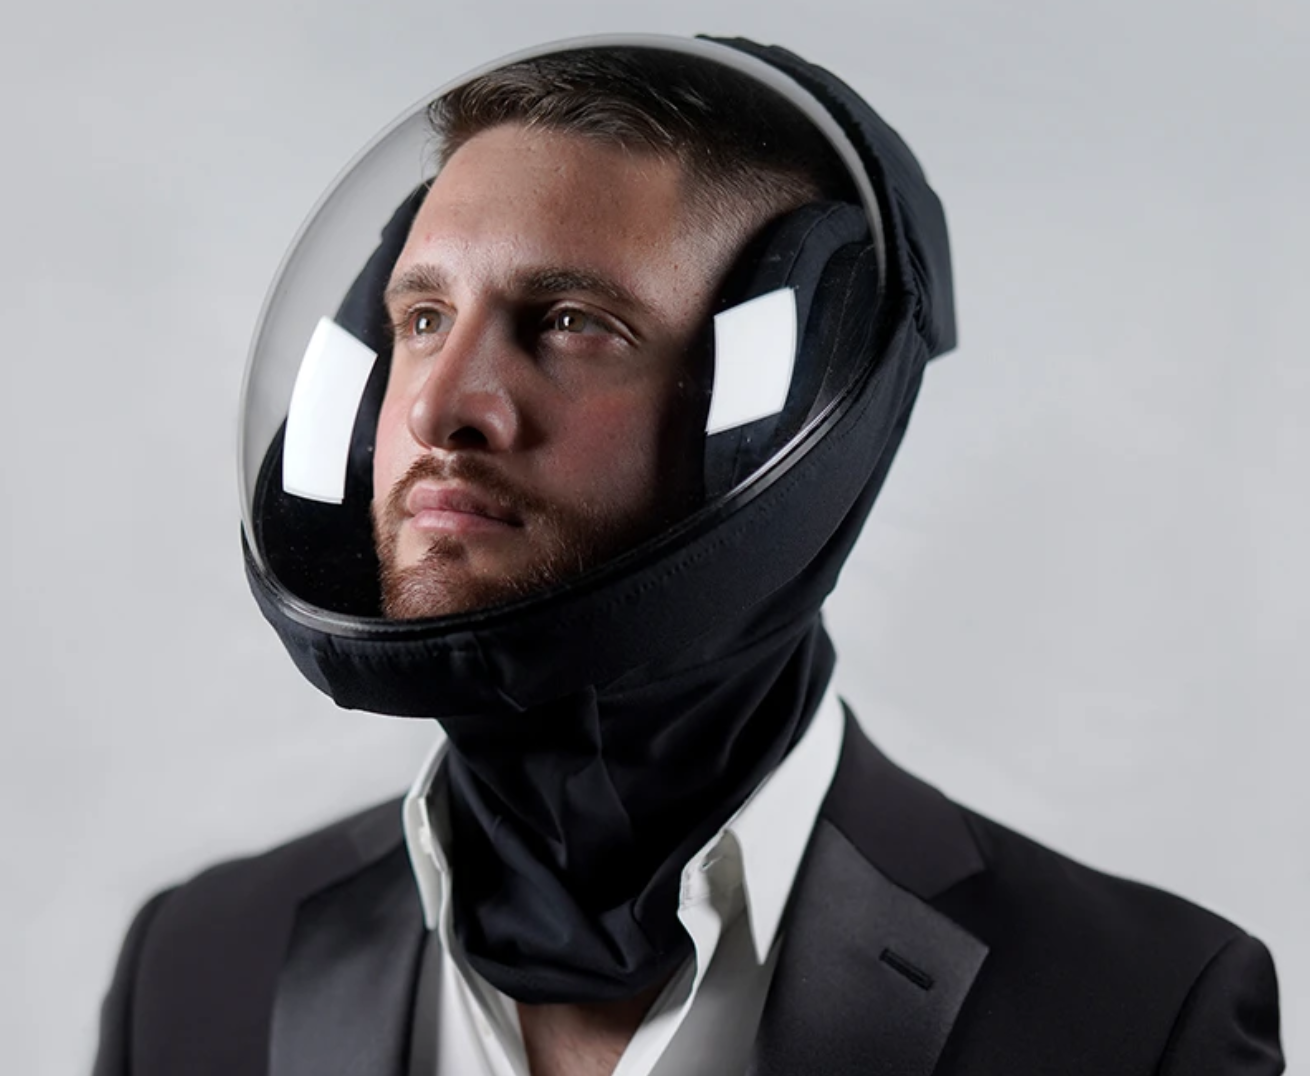 This Helmet Creates a Microclimate Around your Head